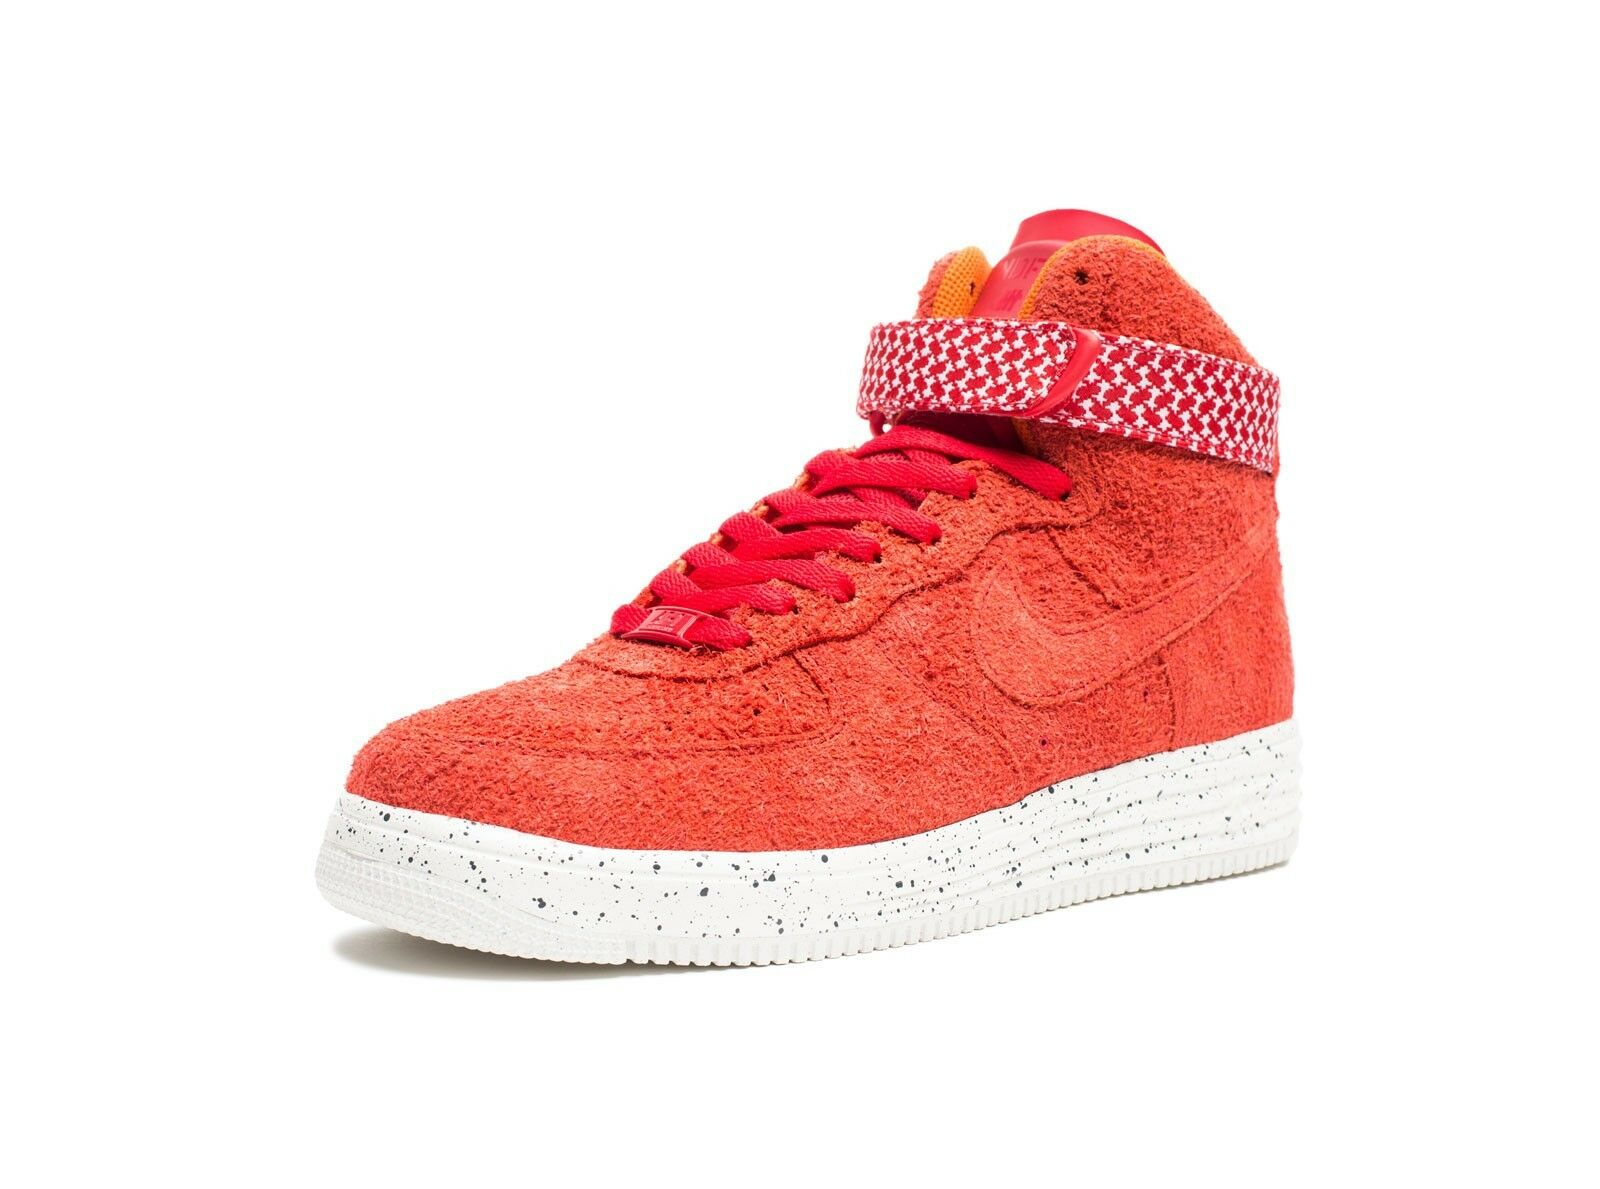 Nike Air Lunar Force One High SP Undefeated 8 University Red UNDFTD Supreme Foam